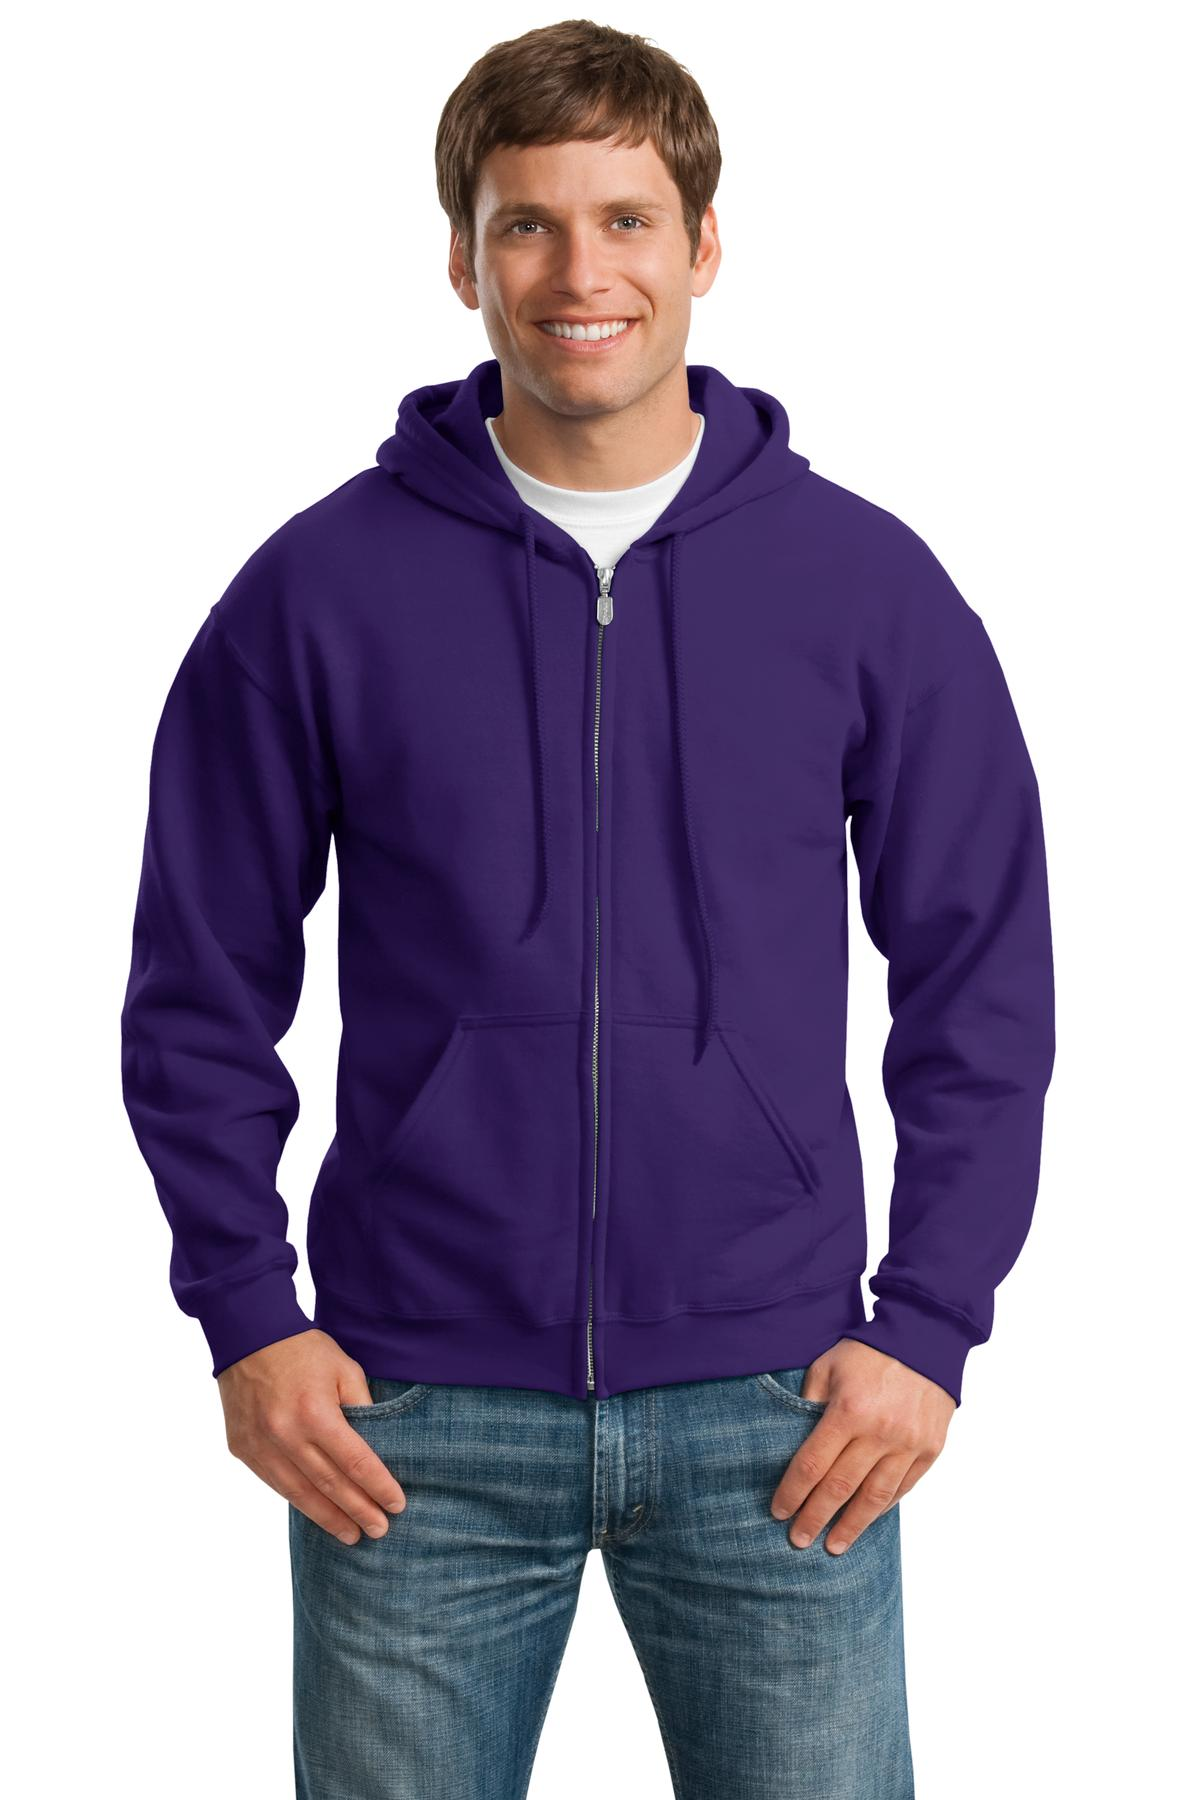 Gildan ®  - Heavy Blend™ Full-Zip Hooded Sweatshirt. 18600 - Purple